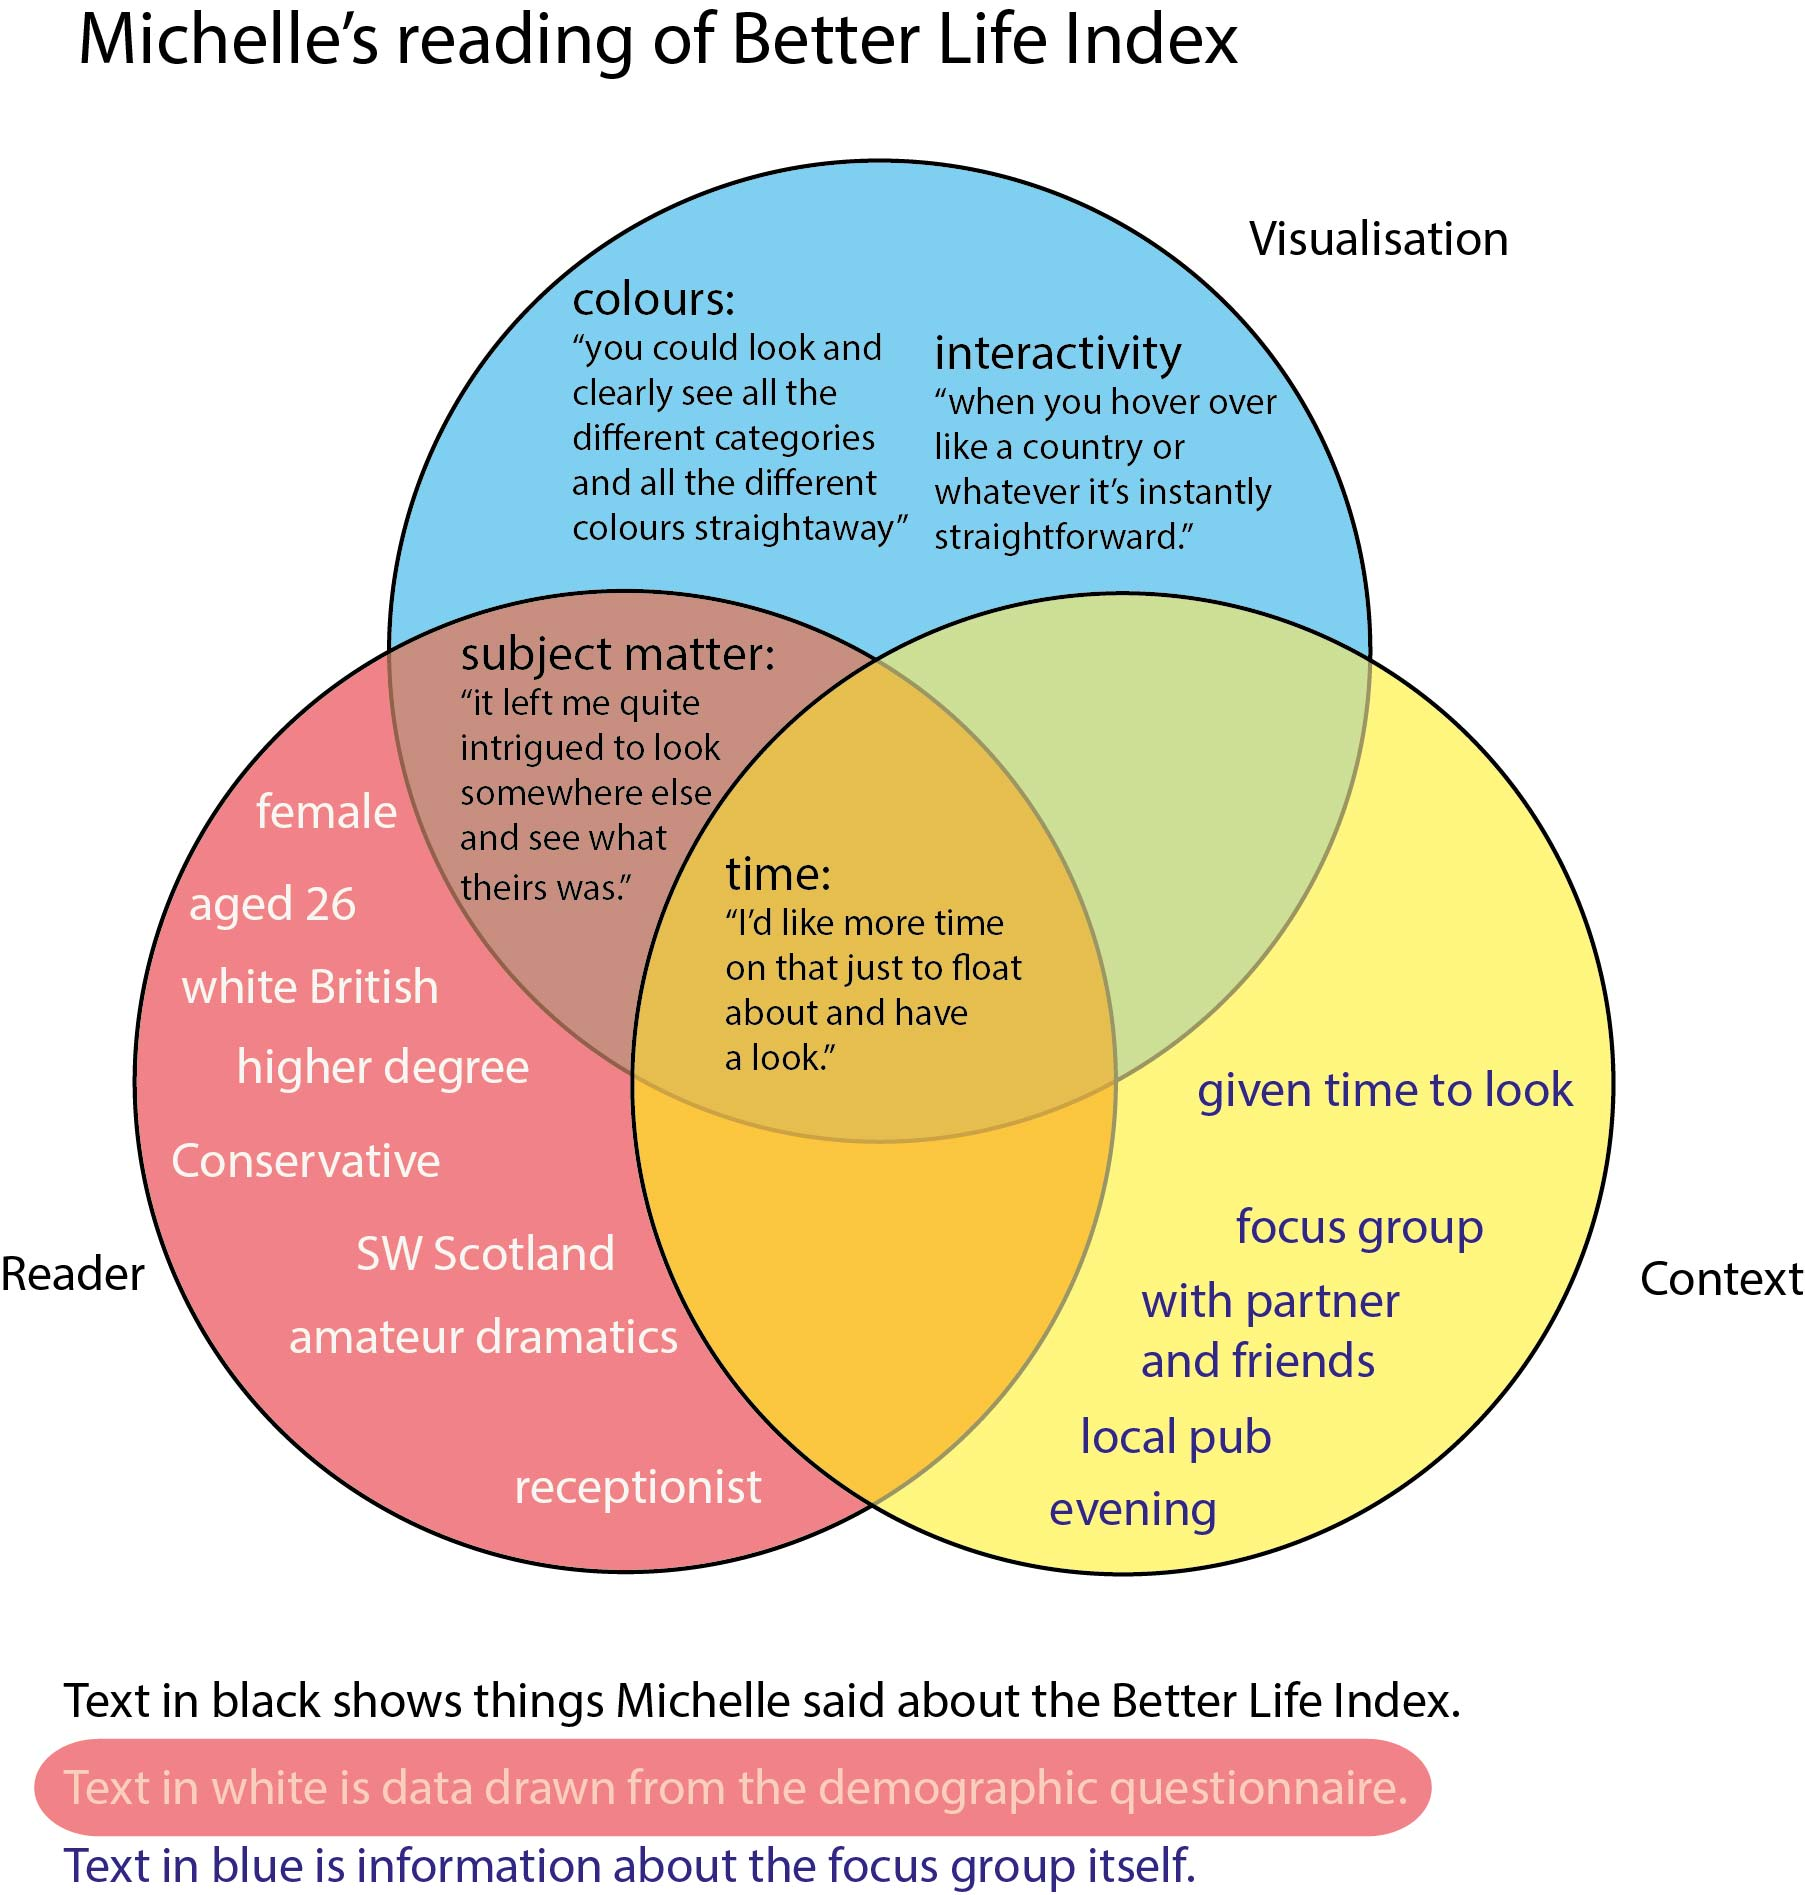 the challenge of visualising qualitative data  can a venn diagram help us to understand the